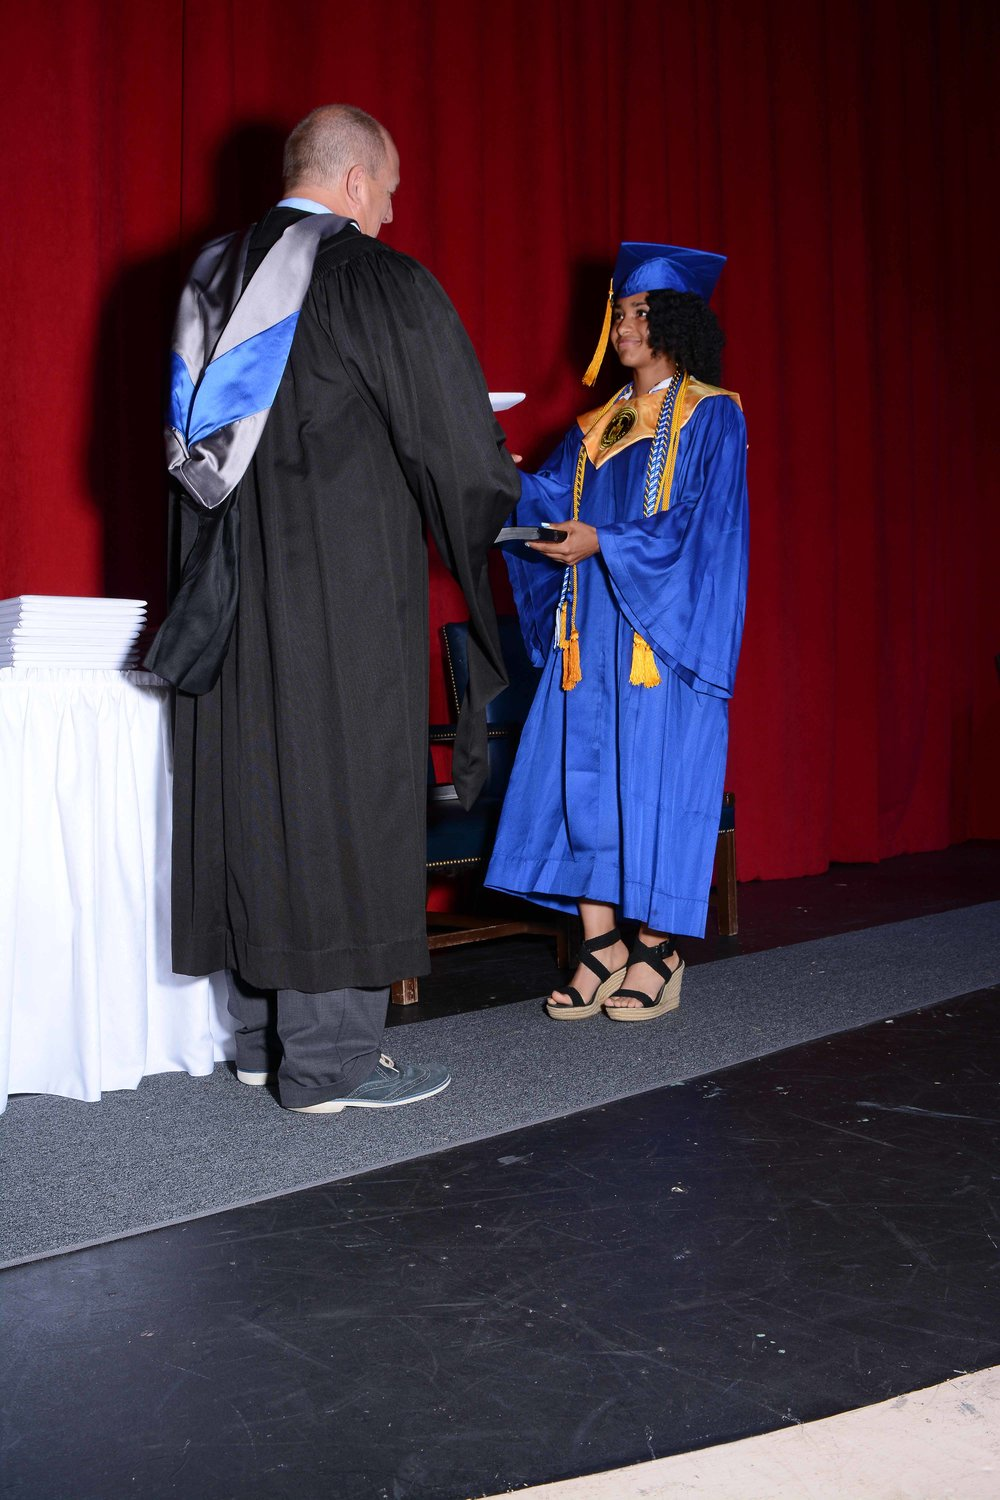 May14 Commencement80.jpg